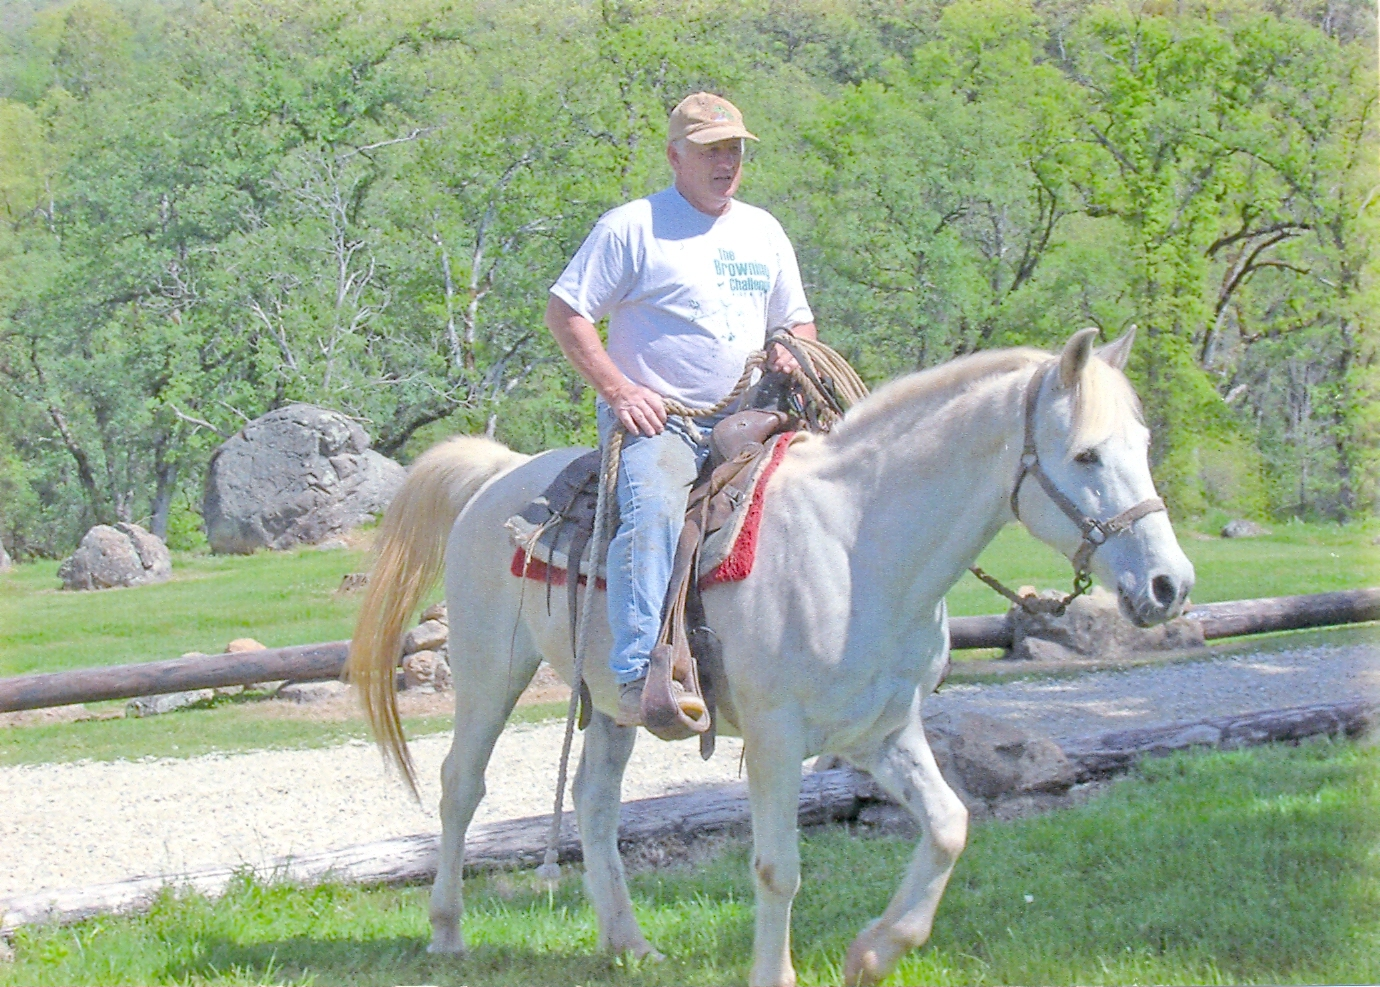 Image of a man on a horse.